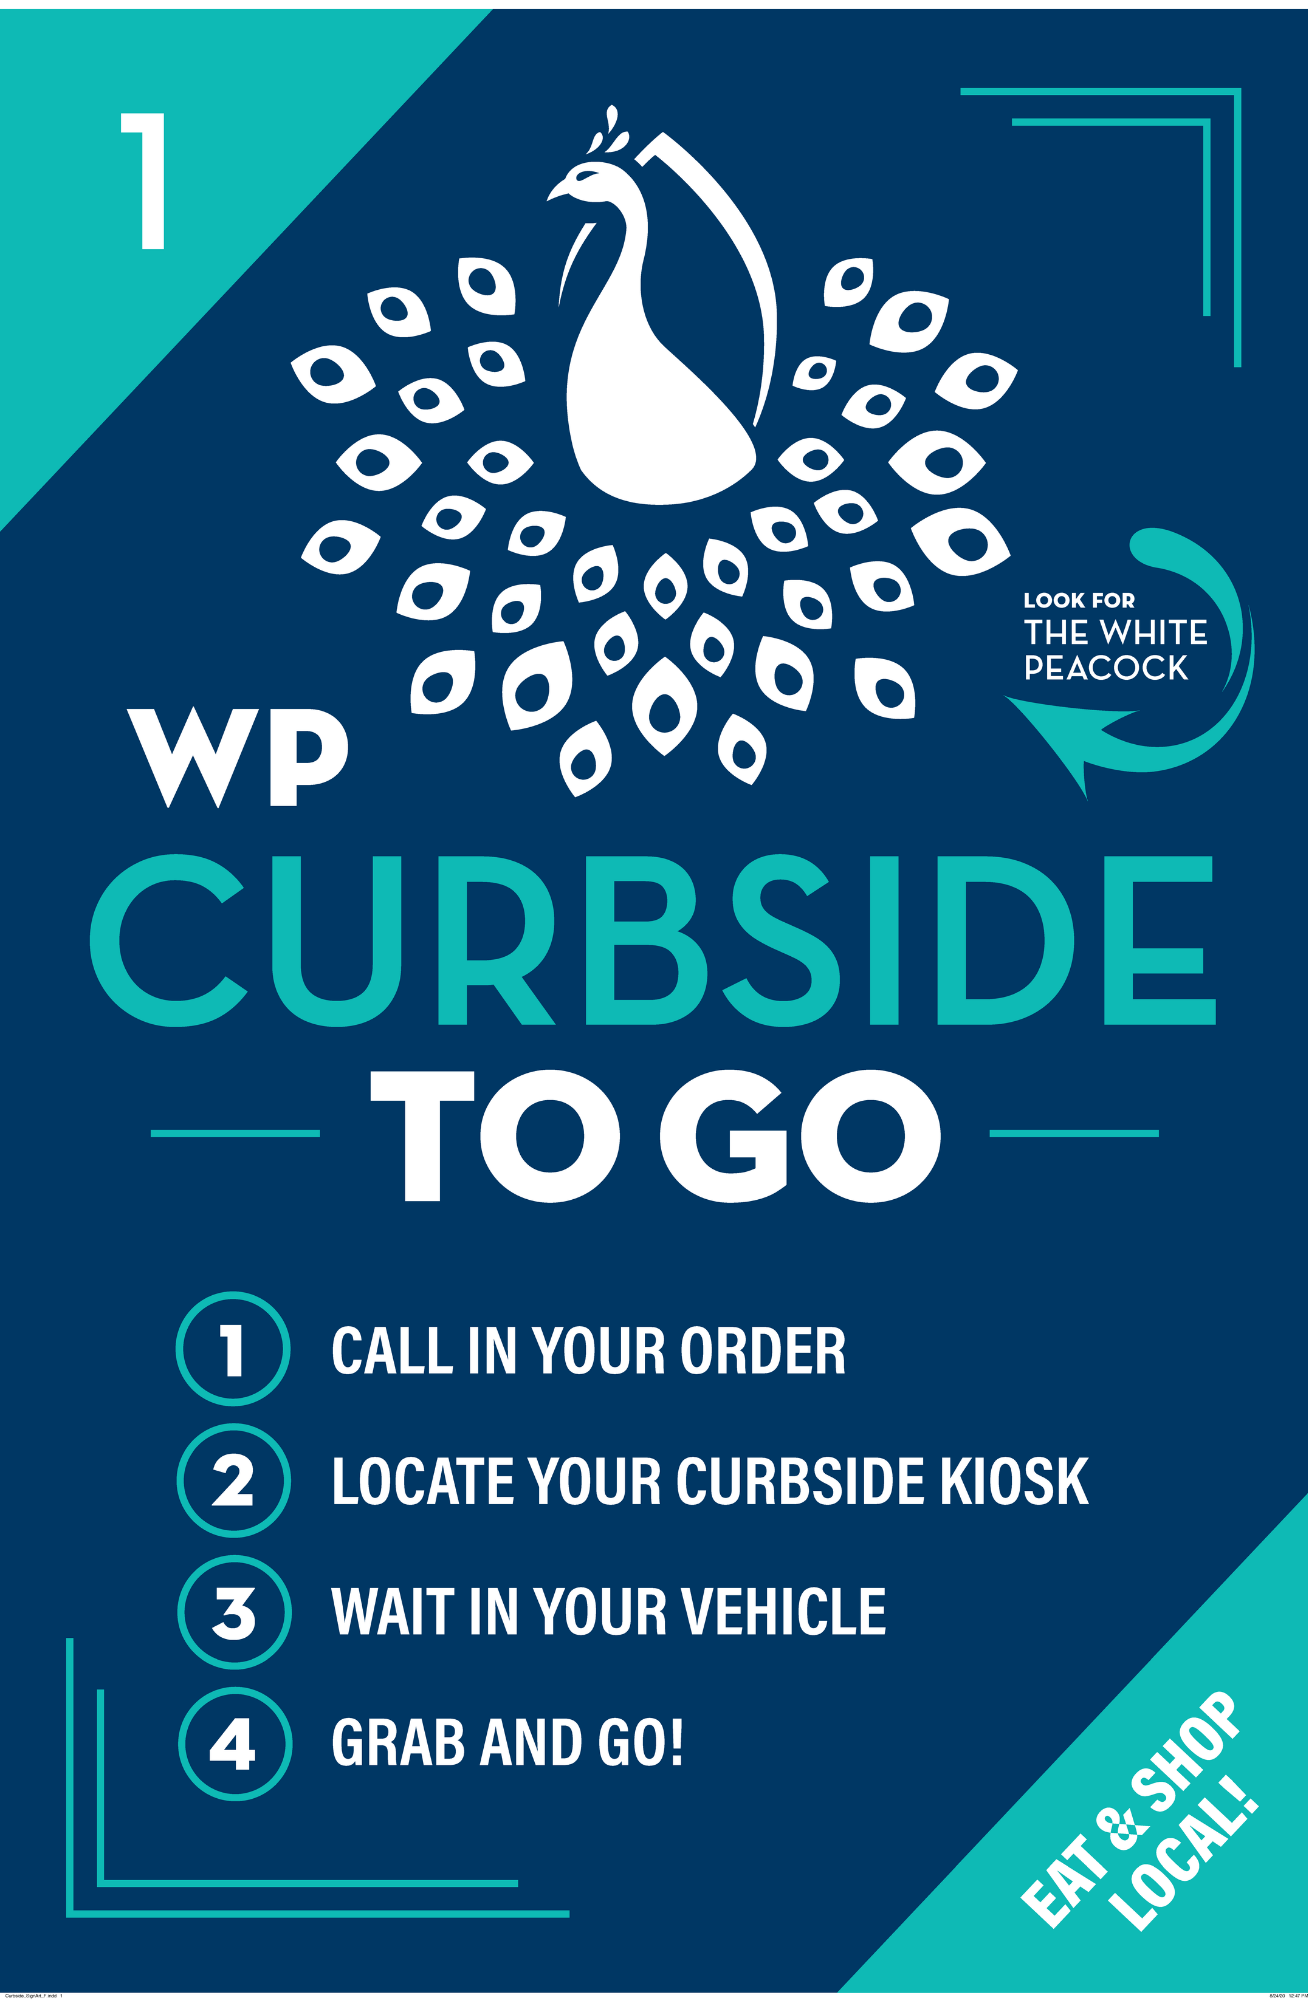 WP-Curbside-to-go.png